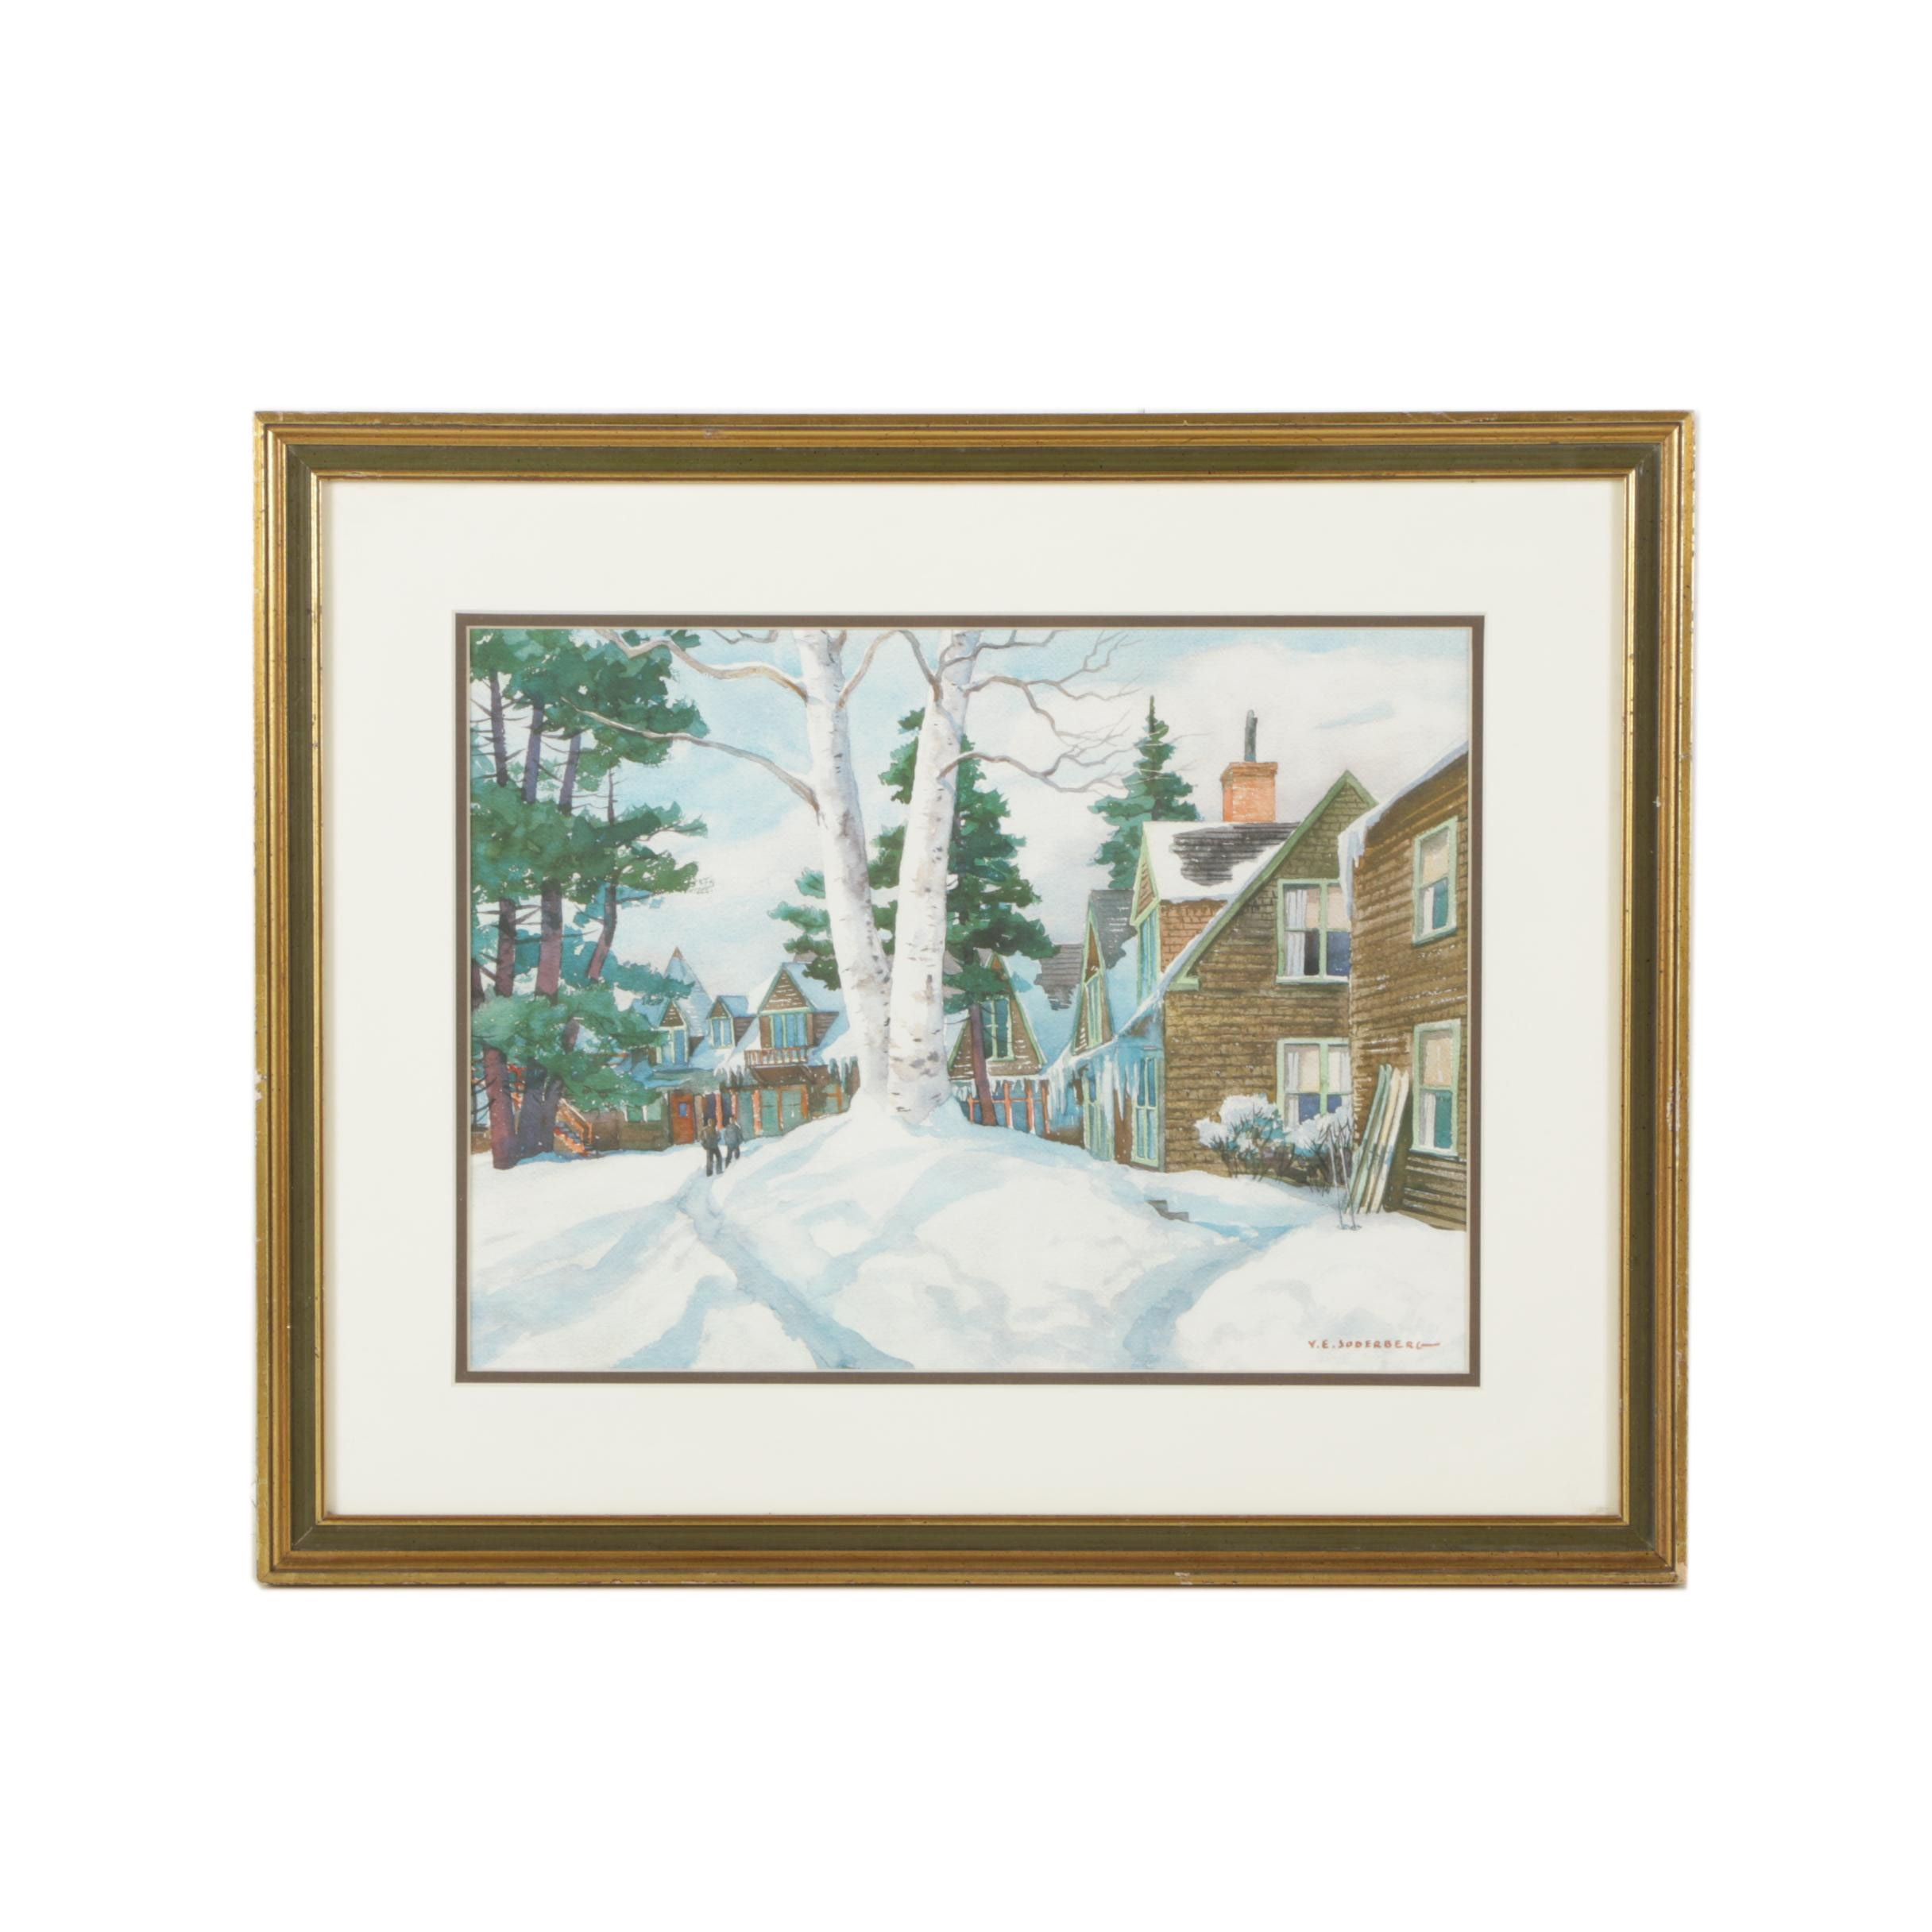 Giclee After Yngve Edward Soderberg Watercolor Painting